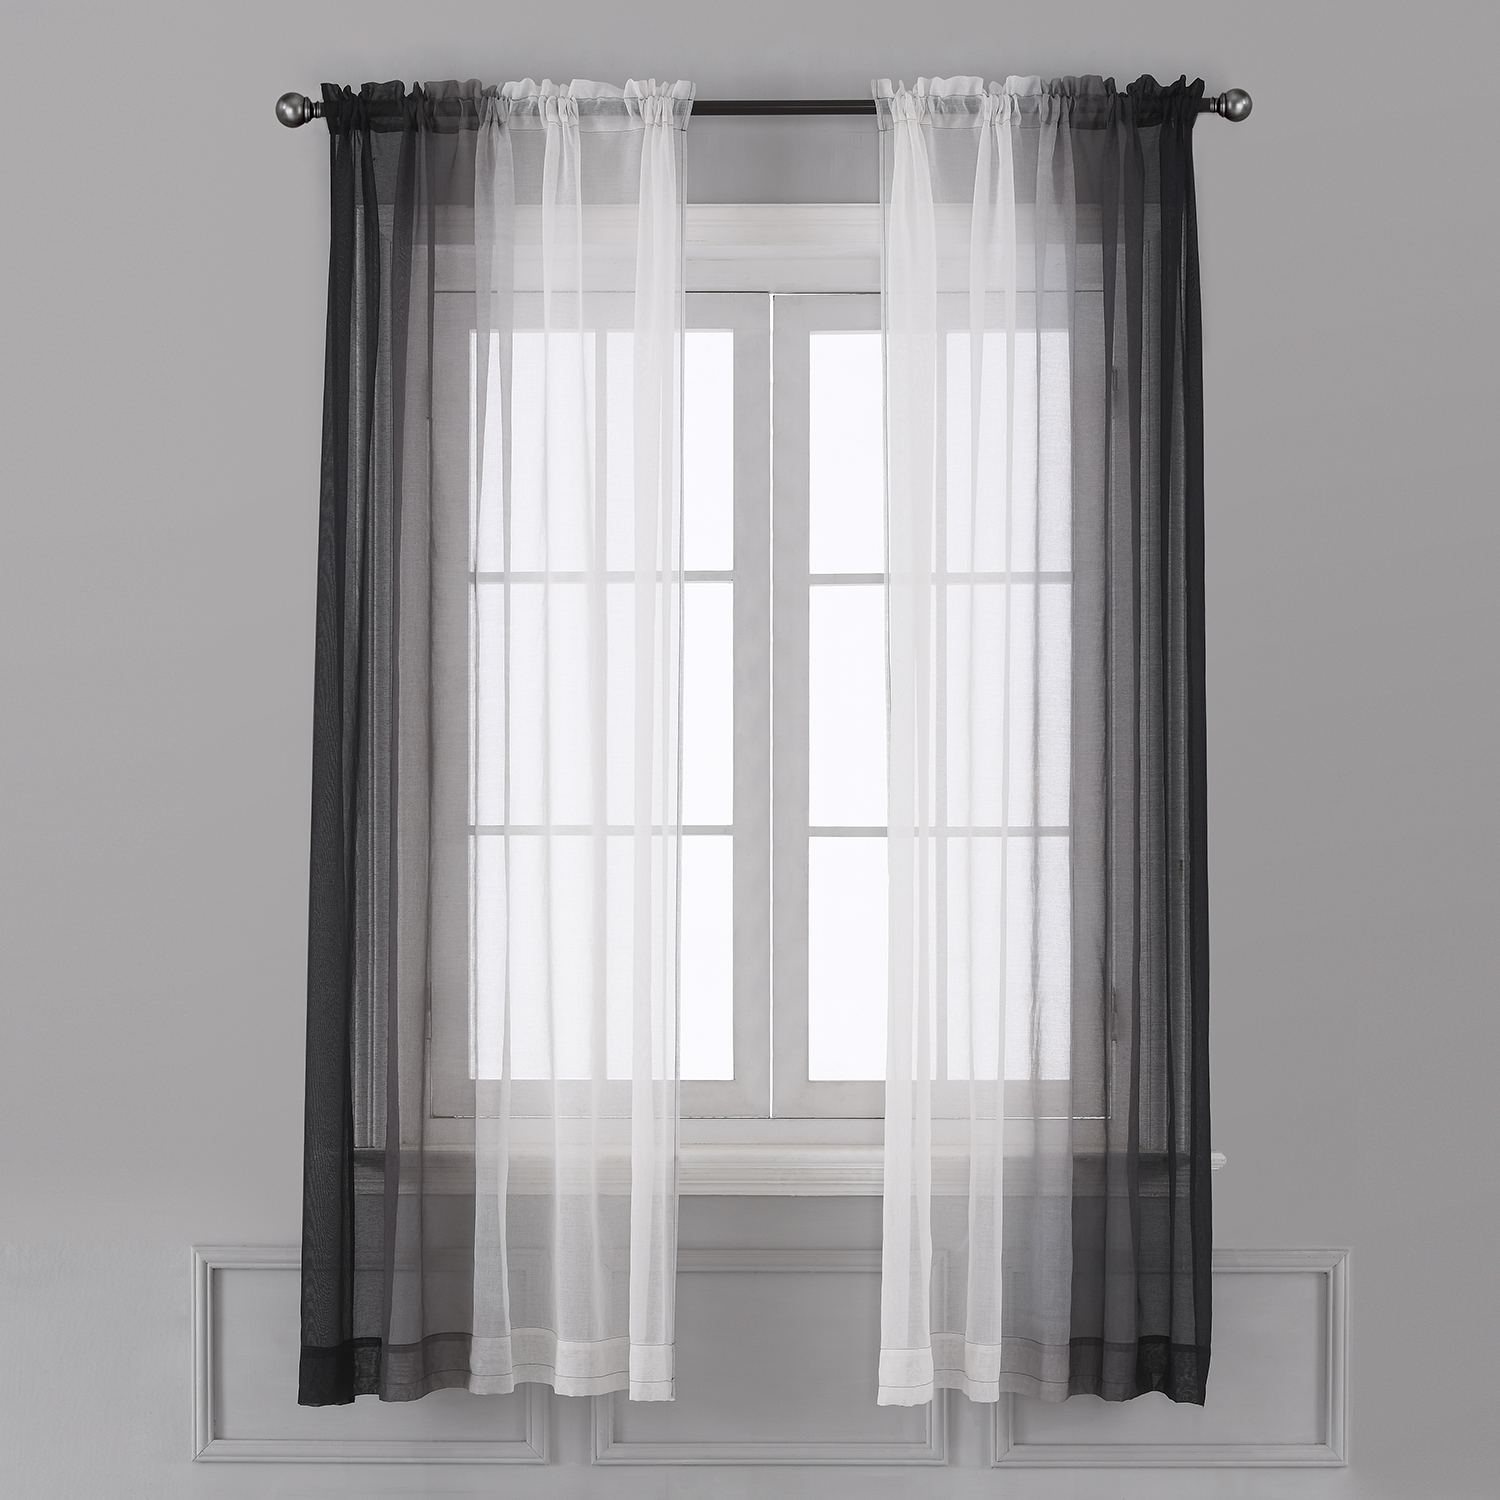 Ombre Sheer Curtains Faux Linen Gradient Semi Voile Rod Pocket Bedroom And Living Room Curtains Set Of 2 Window Curtain Panels 52 W X 96 L Walmart Canada